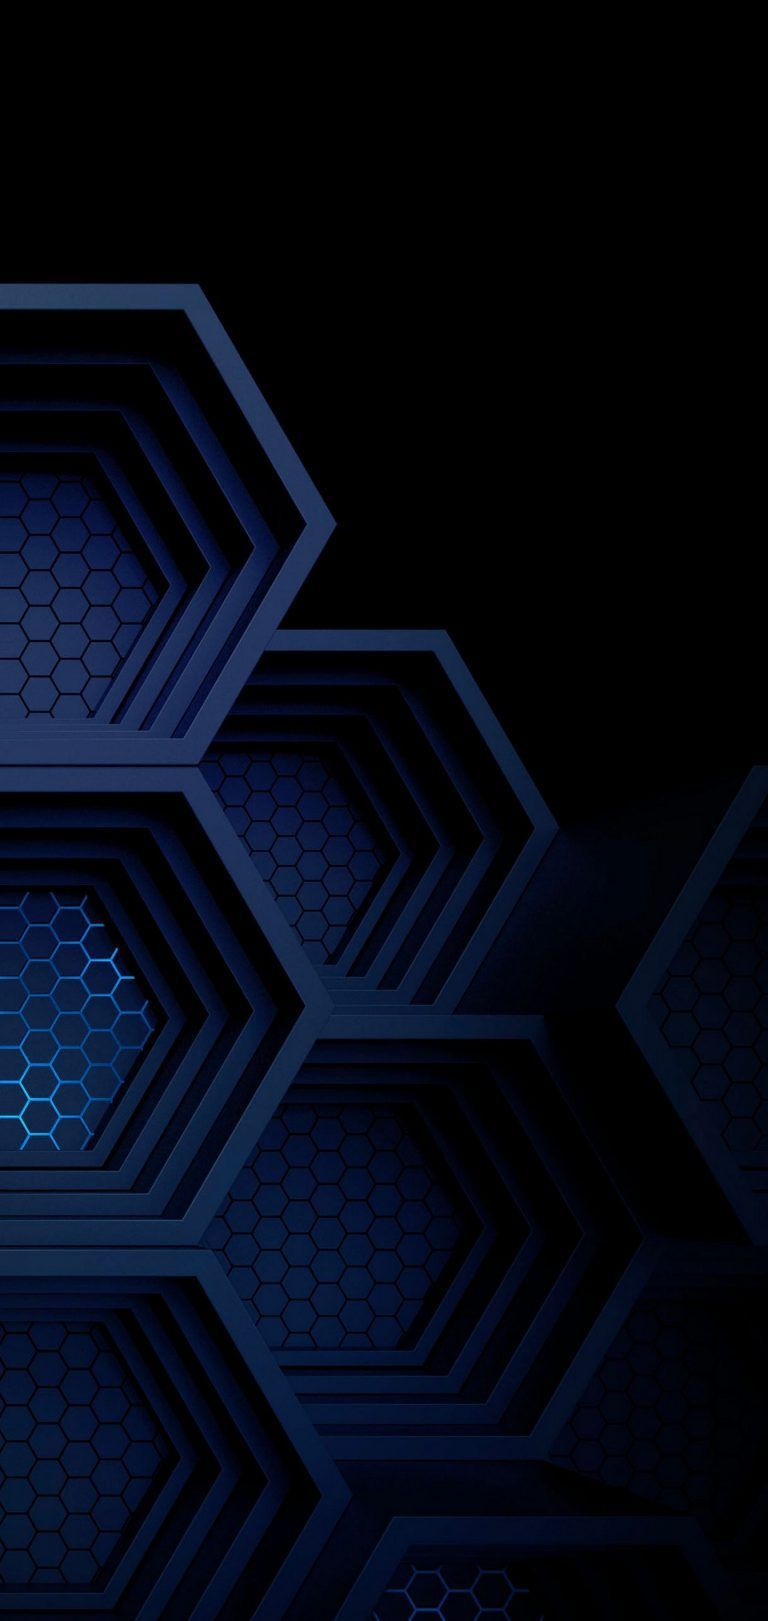 Dark Blue Wallpaper For Mobile Phone Tablet Desktop Computer And Other Devices Hd And 4k Wallpapers In 2021 Dark Blue Wallpaper Blue Wallpapers Dark Blue 4k wallpaper dark blue